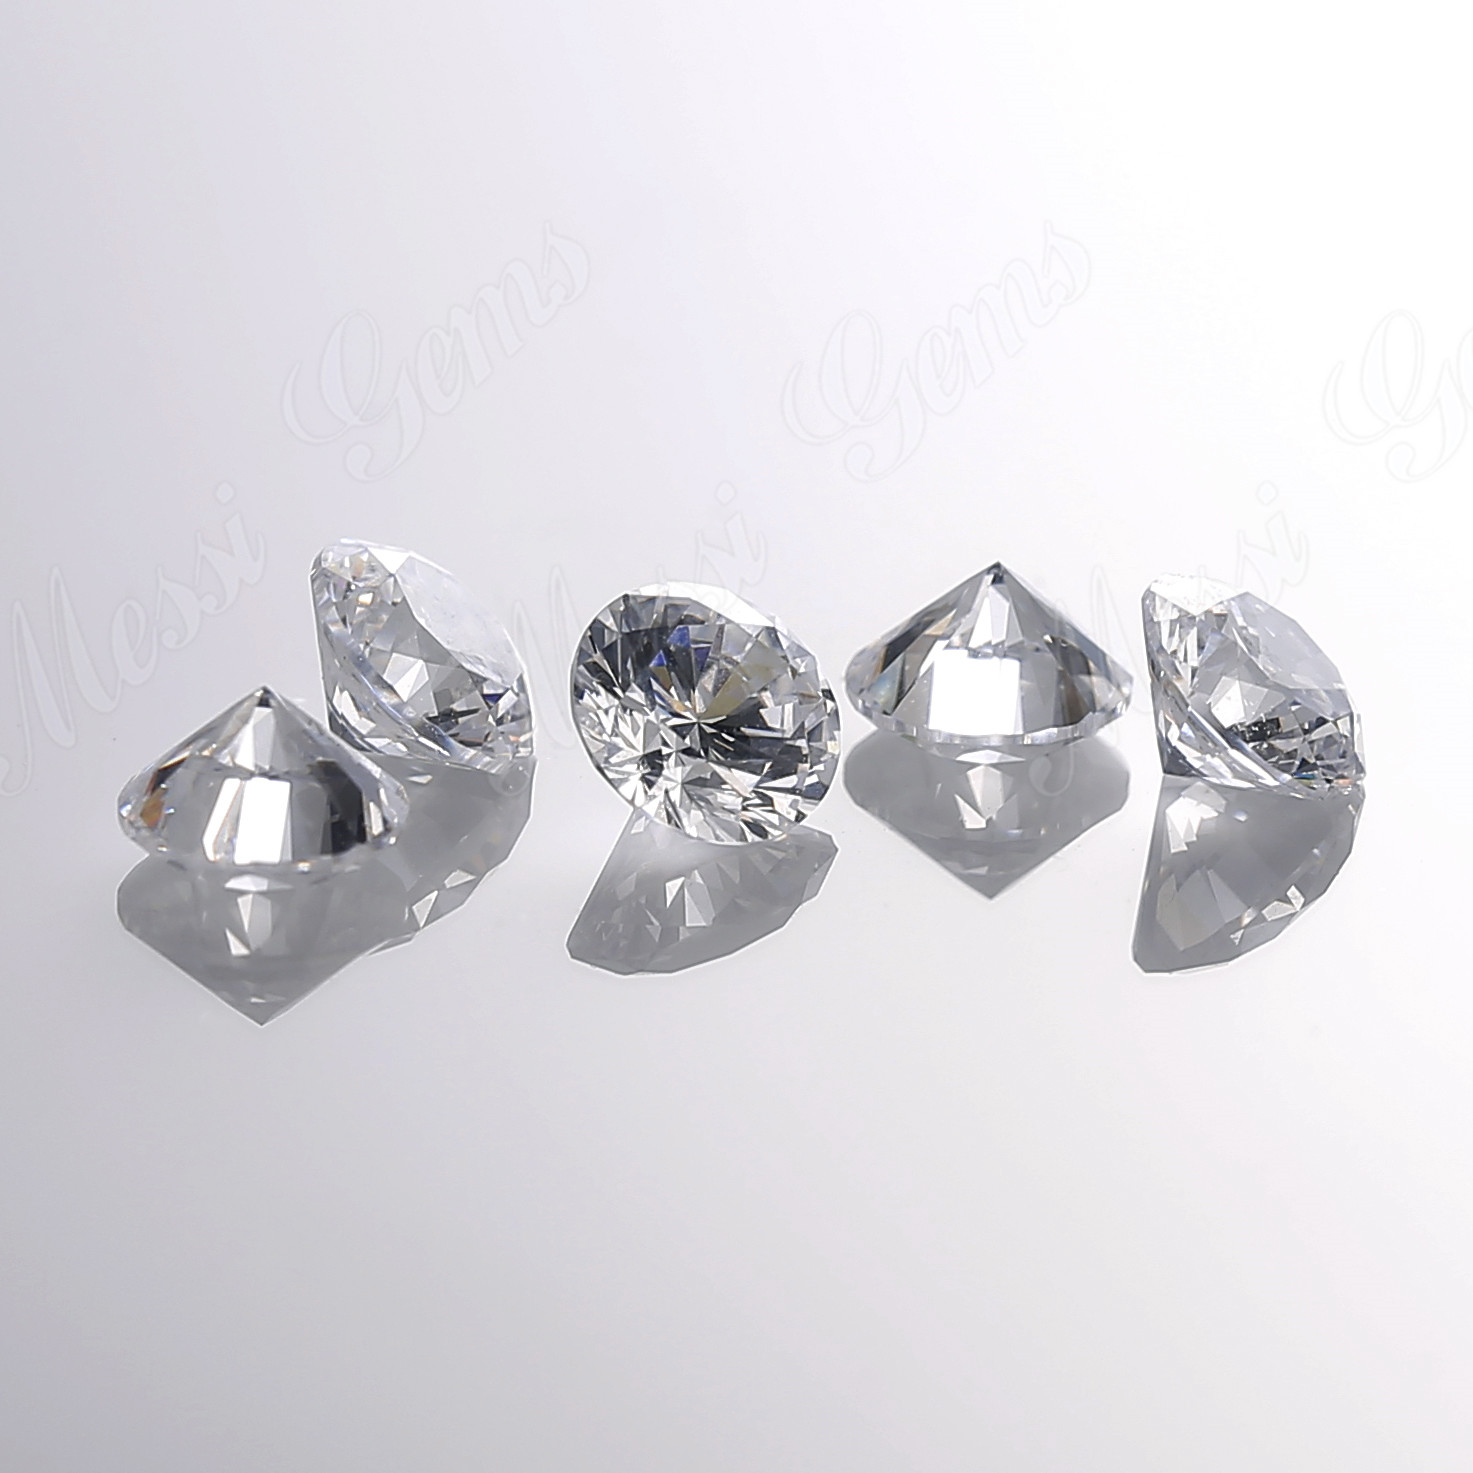 0.12 Carat Brilliant Cut DEF VVS White HTHP diamond Synthetic lab created diamond stone